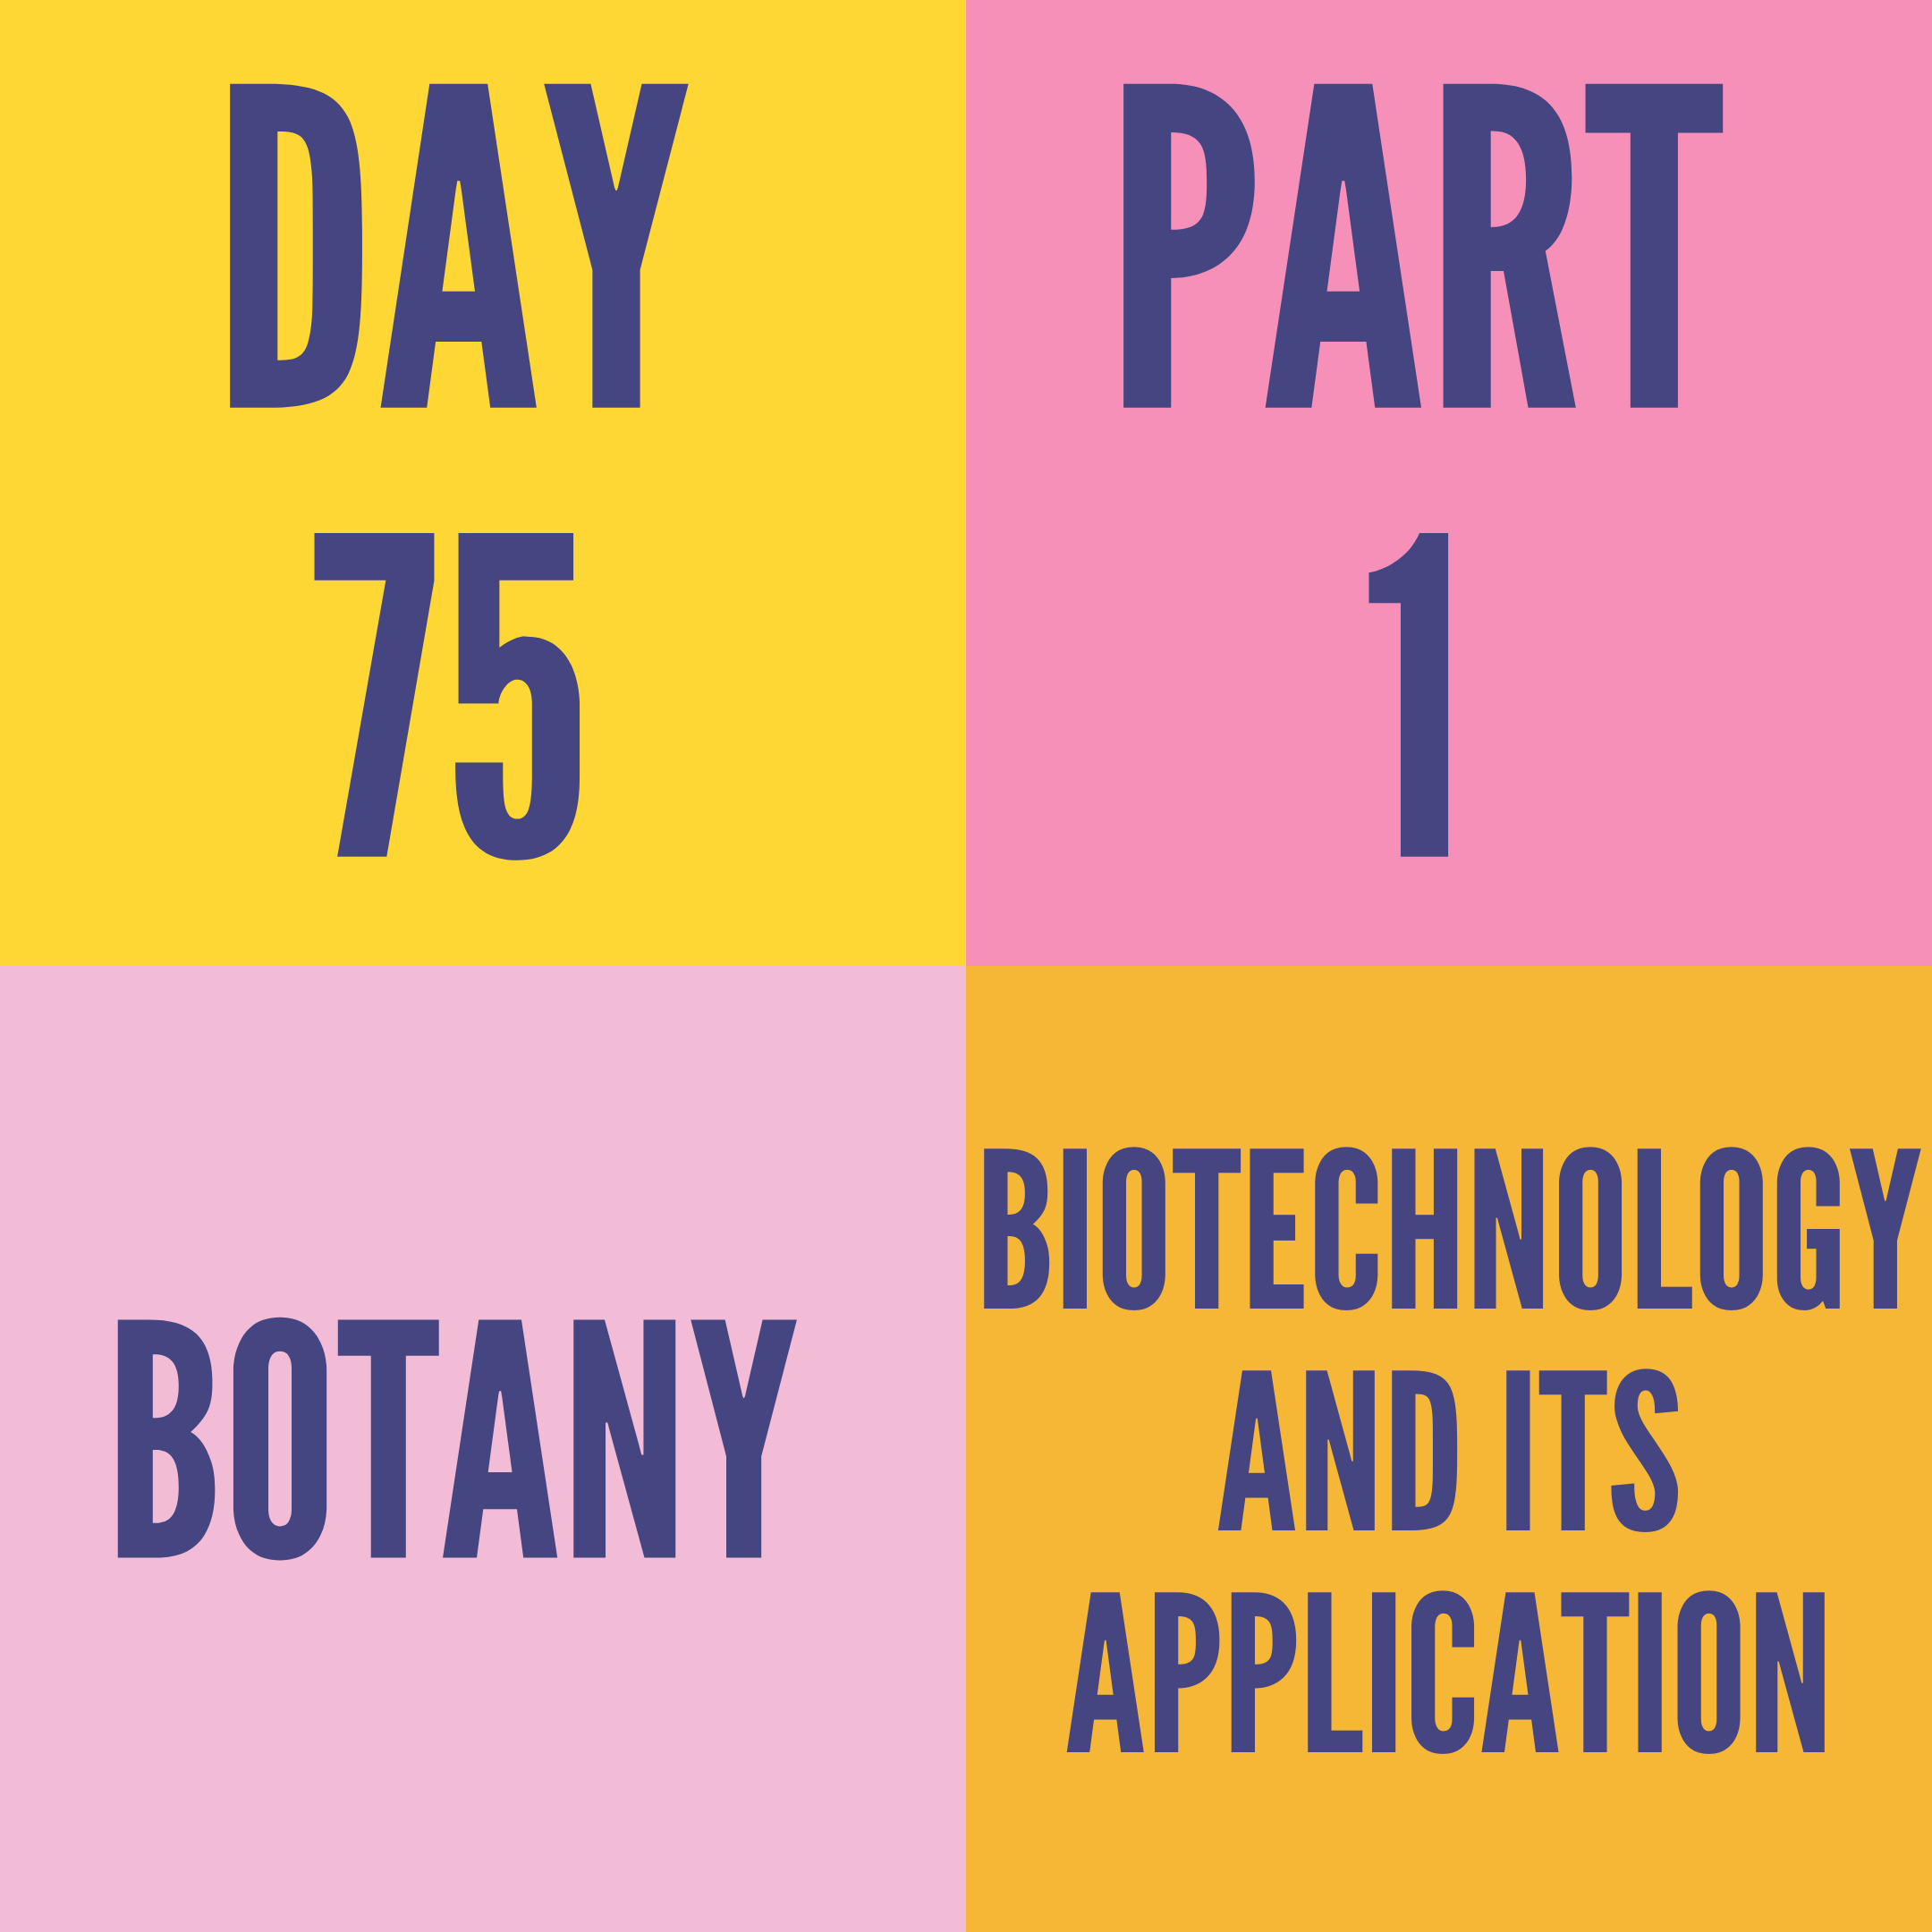 DAY-75 PART-1 BIOTECHNOLOGY AND ITS APPLICATION